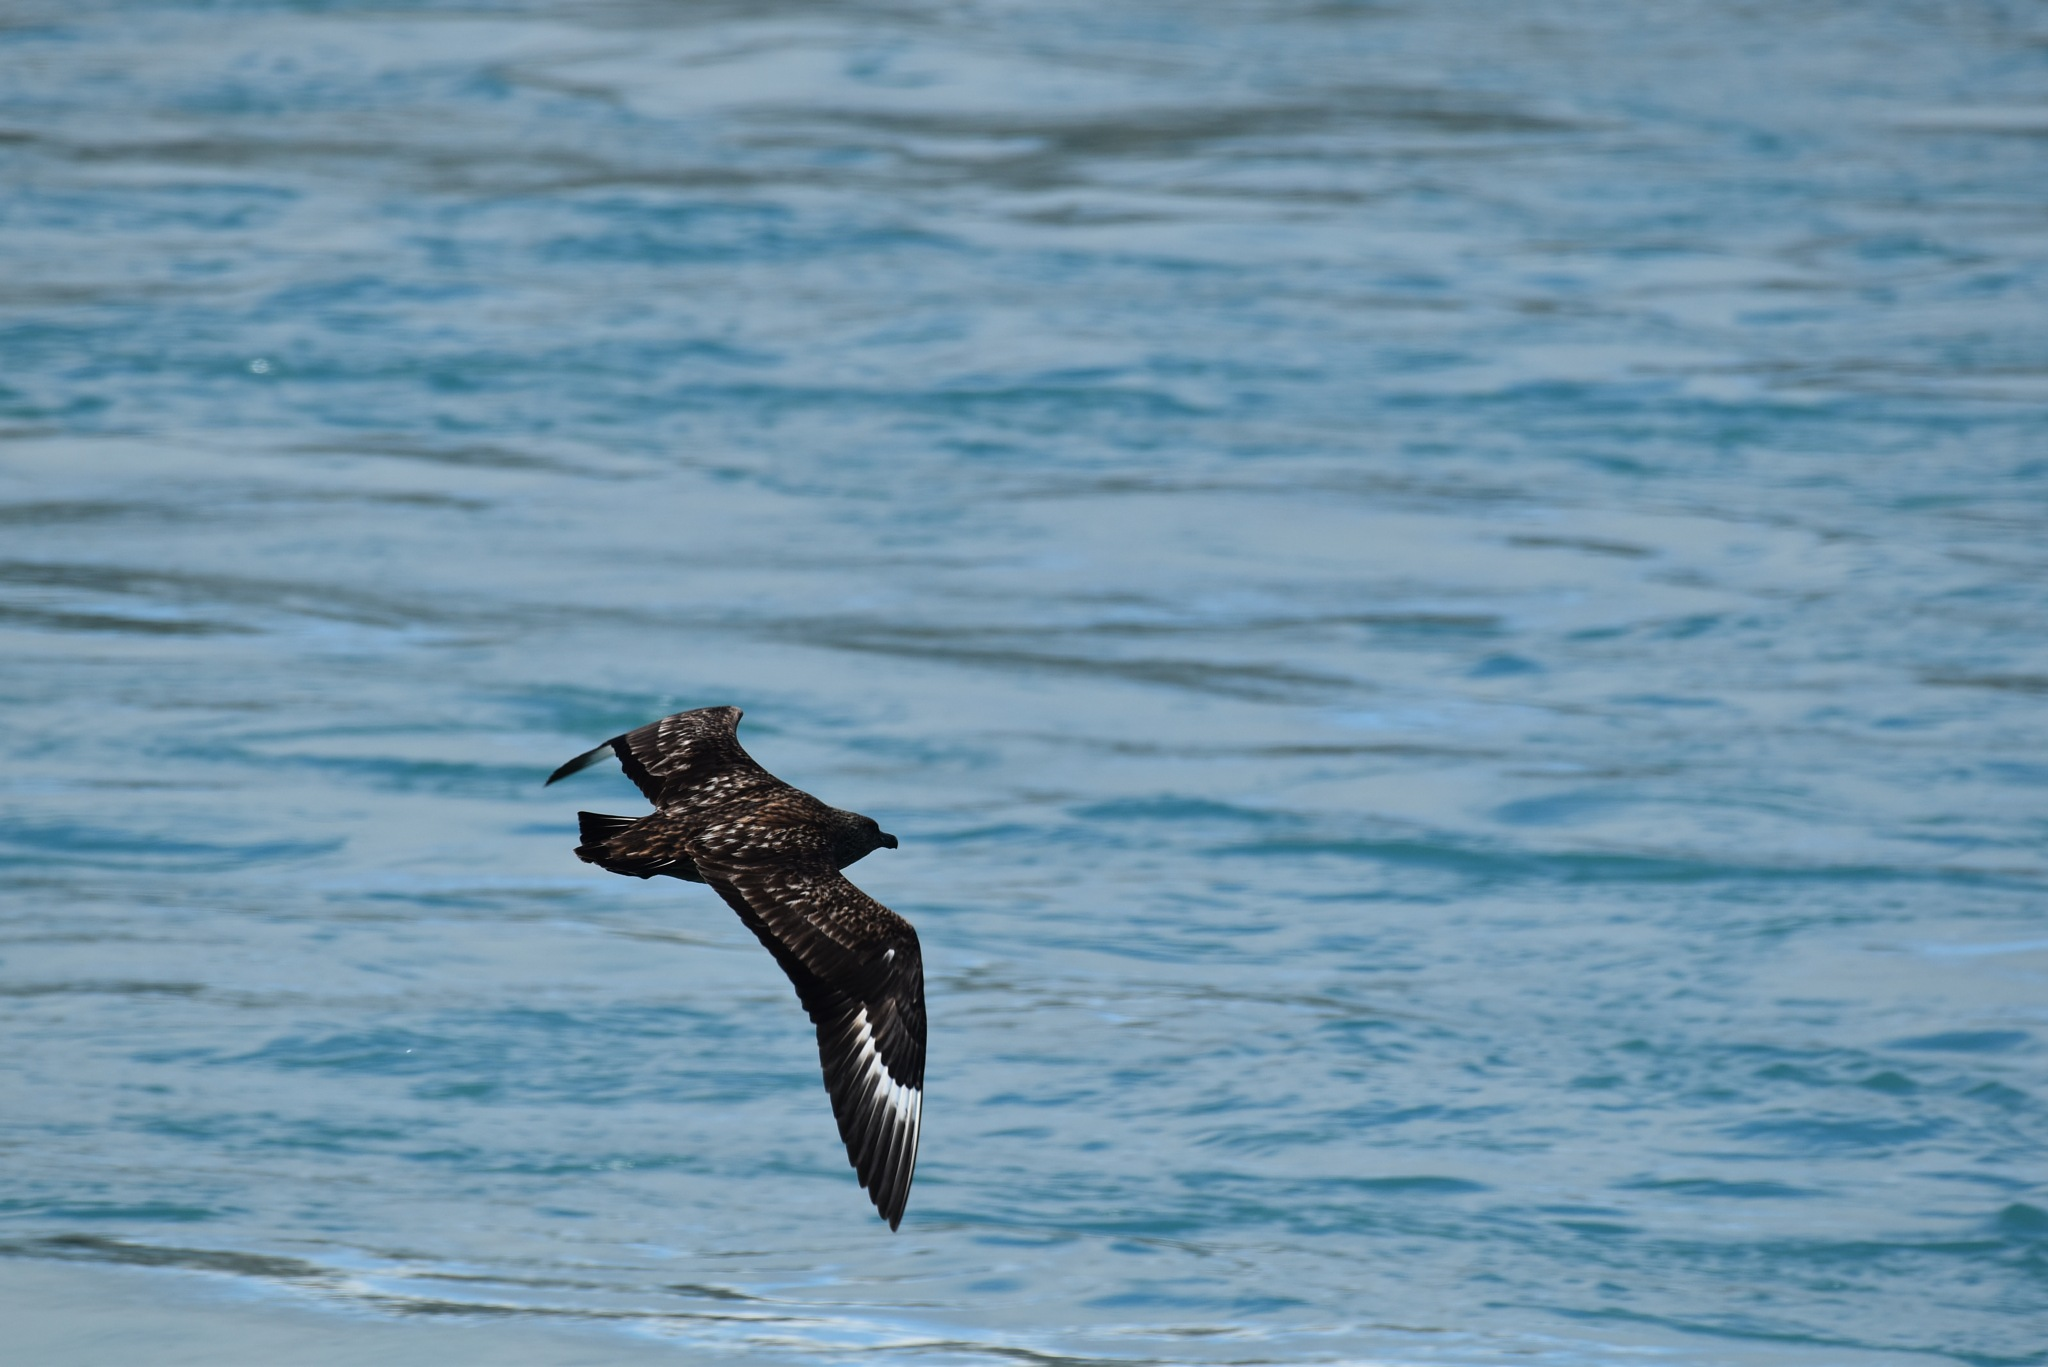 Great skua by Gergely Talaber